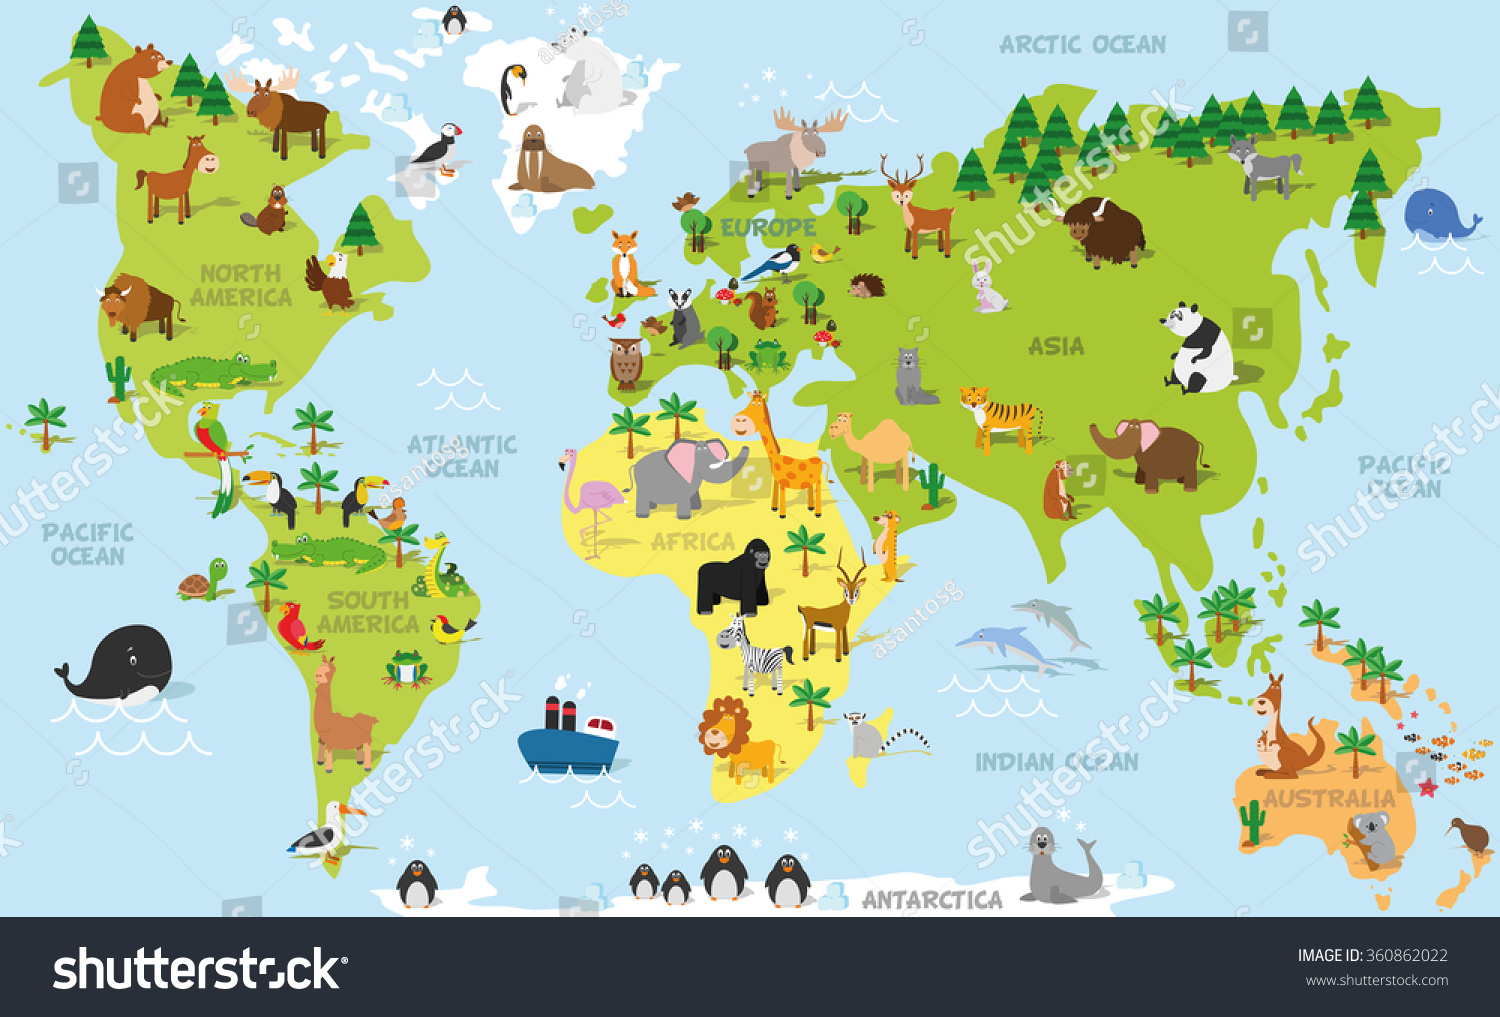 Funny cartoon world map traditional animals vectores en stock funny cartoon world map with traditional animals of all the continents and oceans vector illustration gumiabroncs Image collections